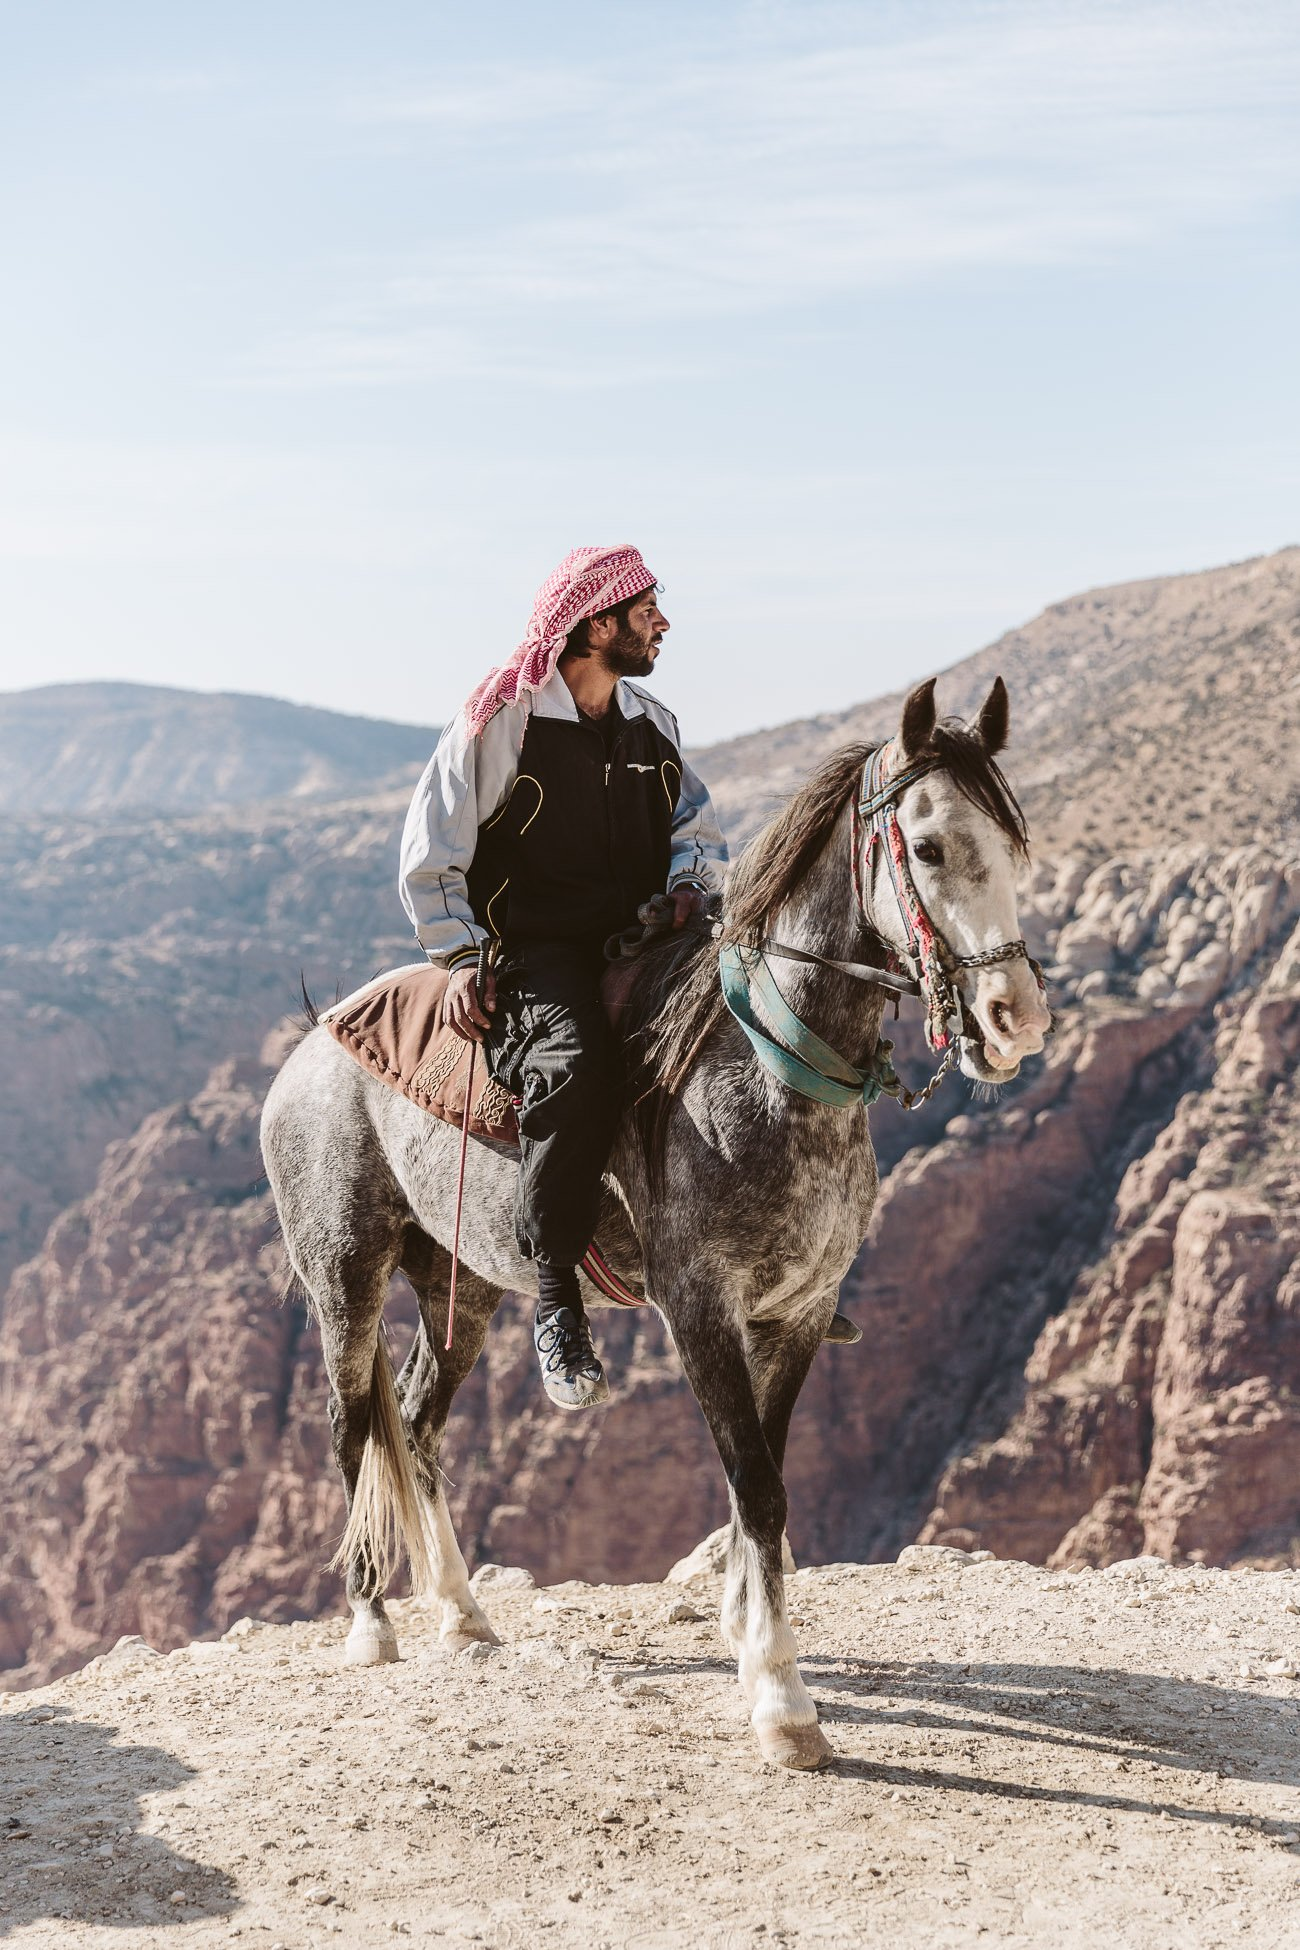 Local Horse rider at Dana Biosphere Reserve Jordan